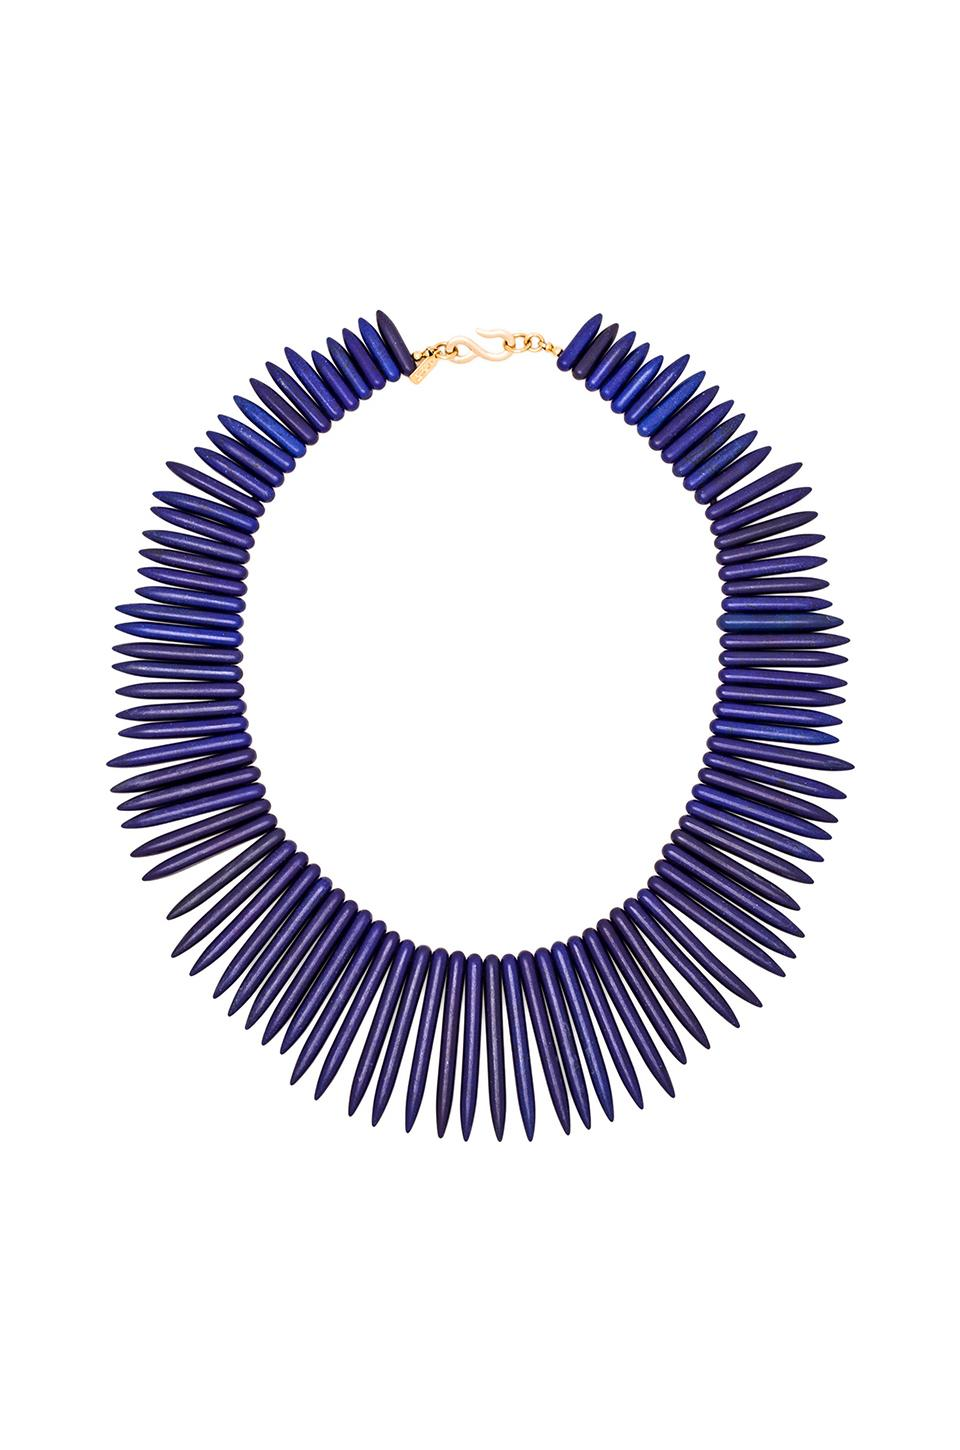 Kenneth Jay Lane Spikes Necklace in Lapis